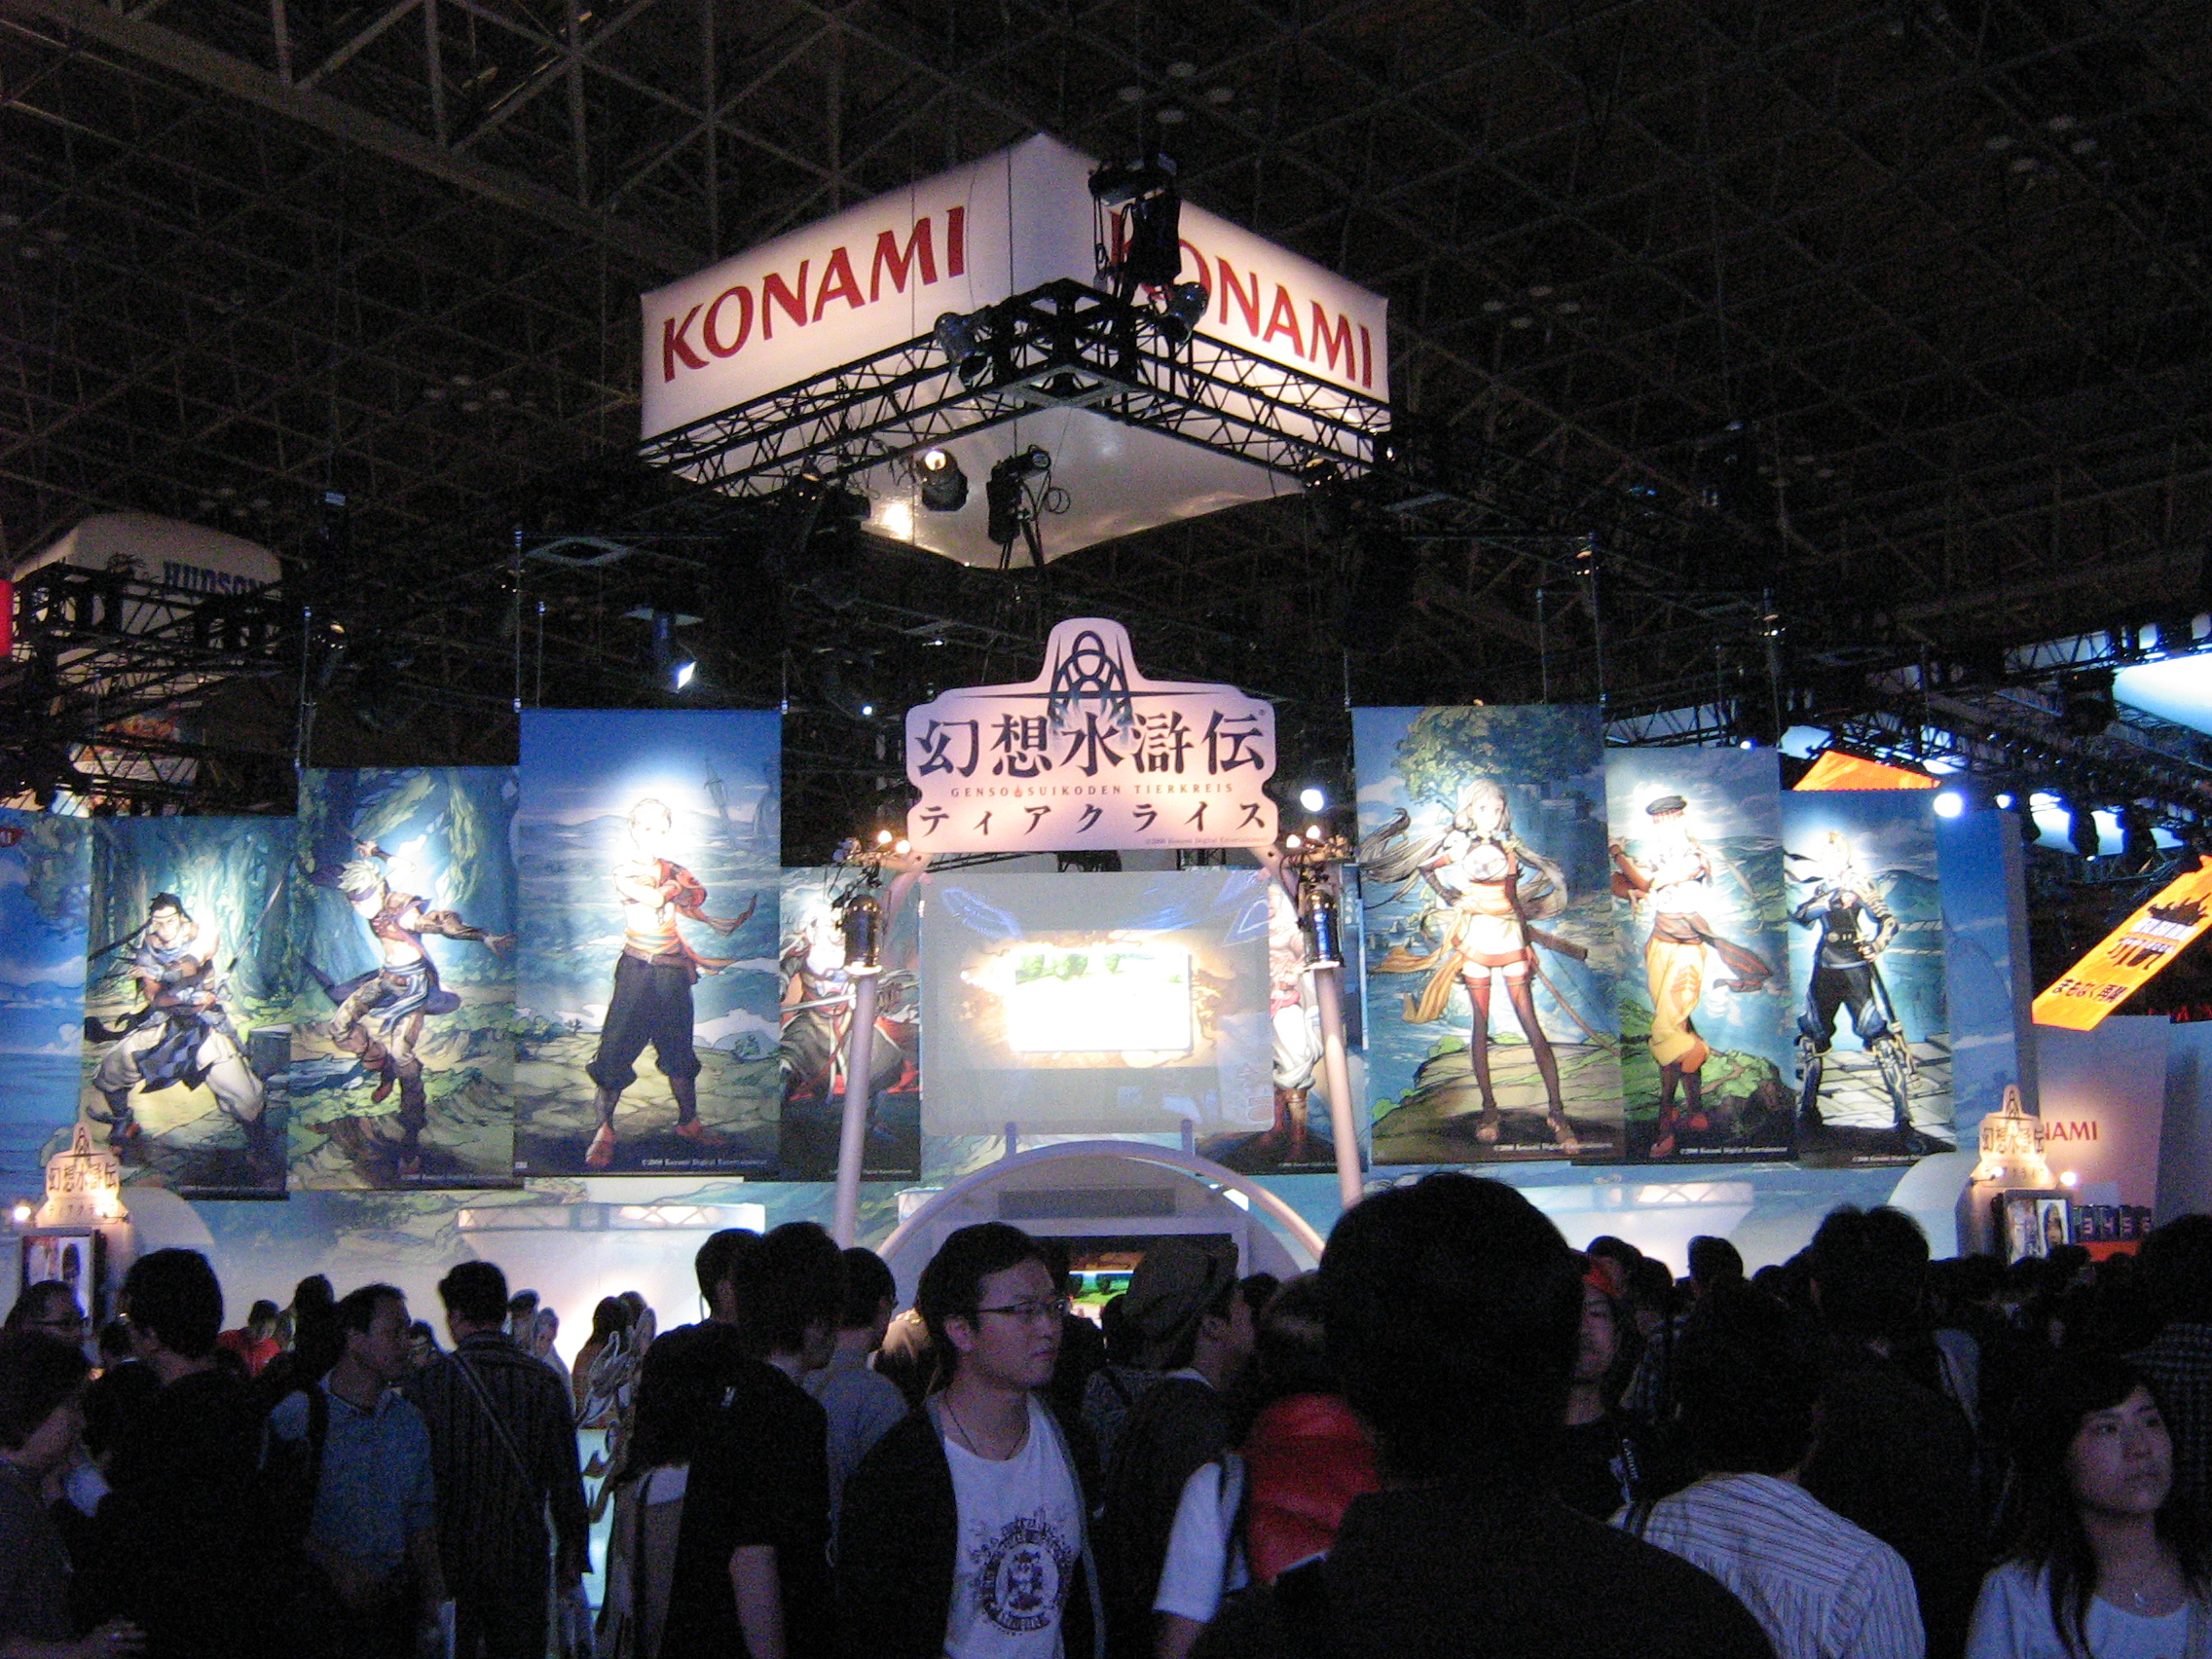 Exhibition Booth Games : File konami booth tokyo game show g